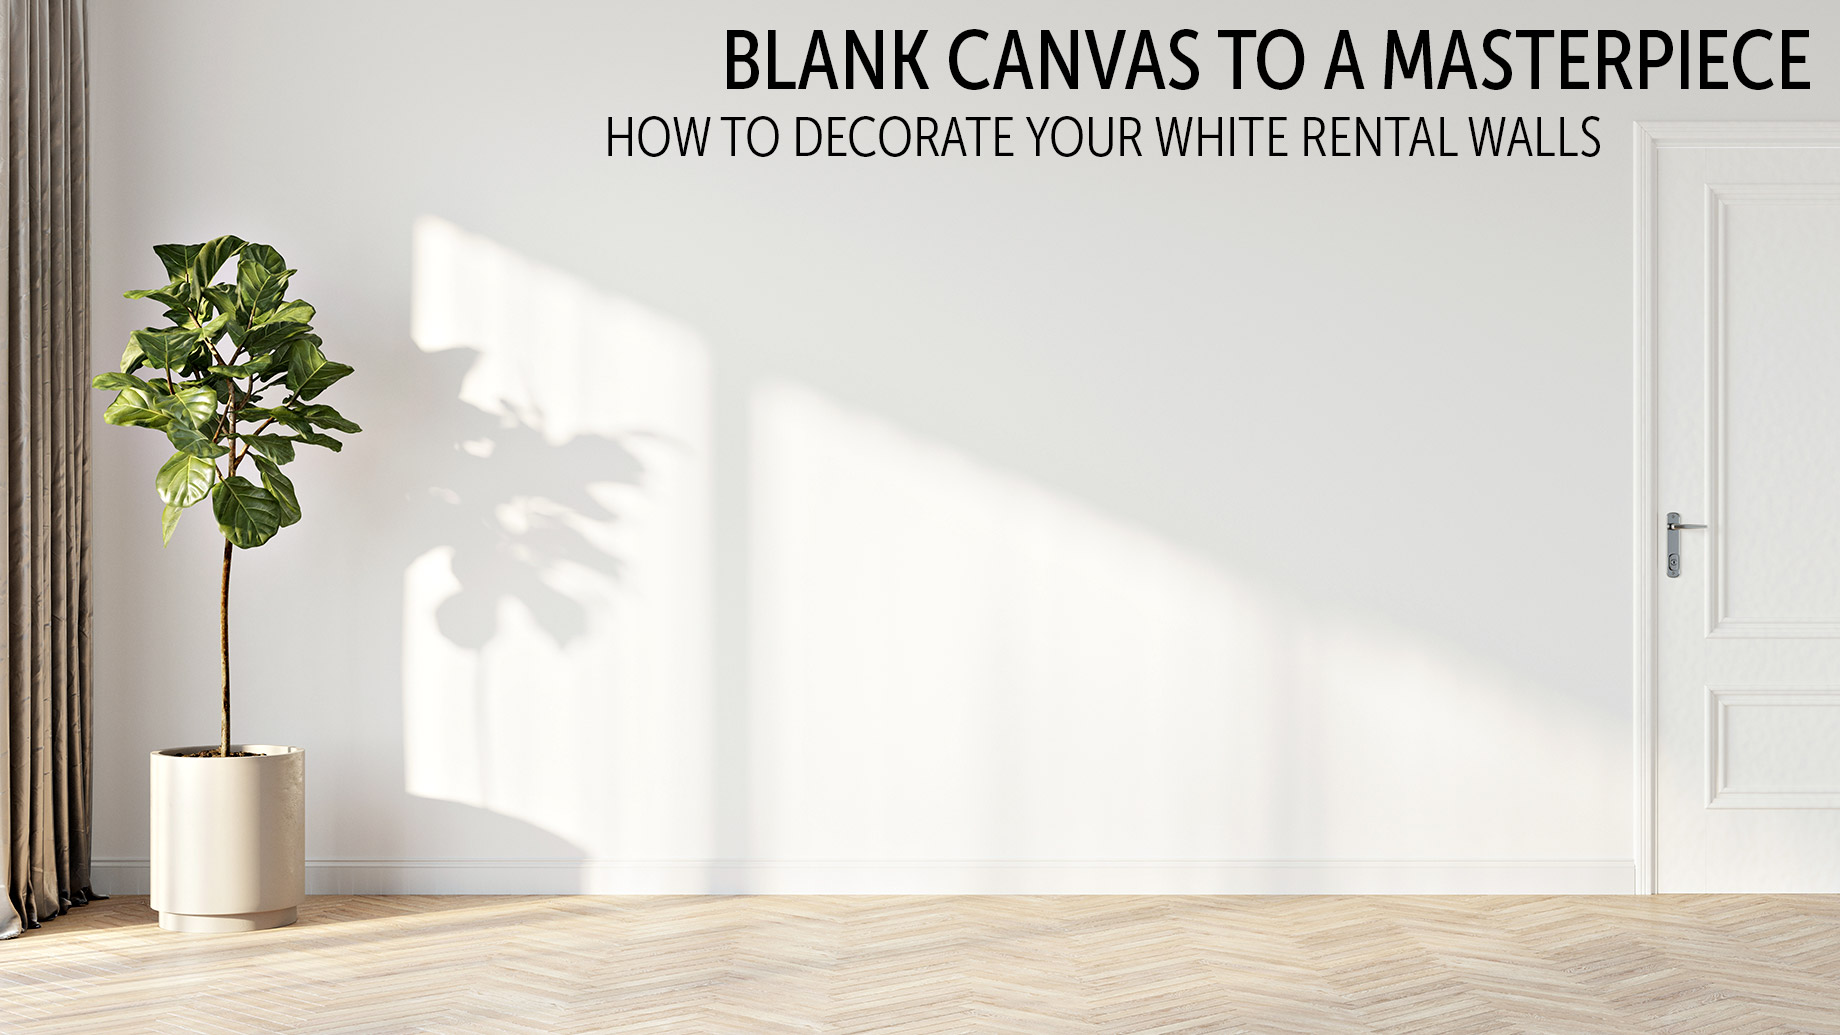 Blank Canvas to a Masterpiece - How to Decorate Your White Rental Walls